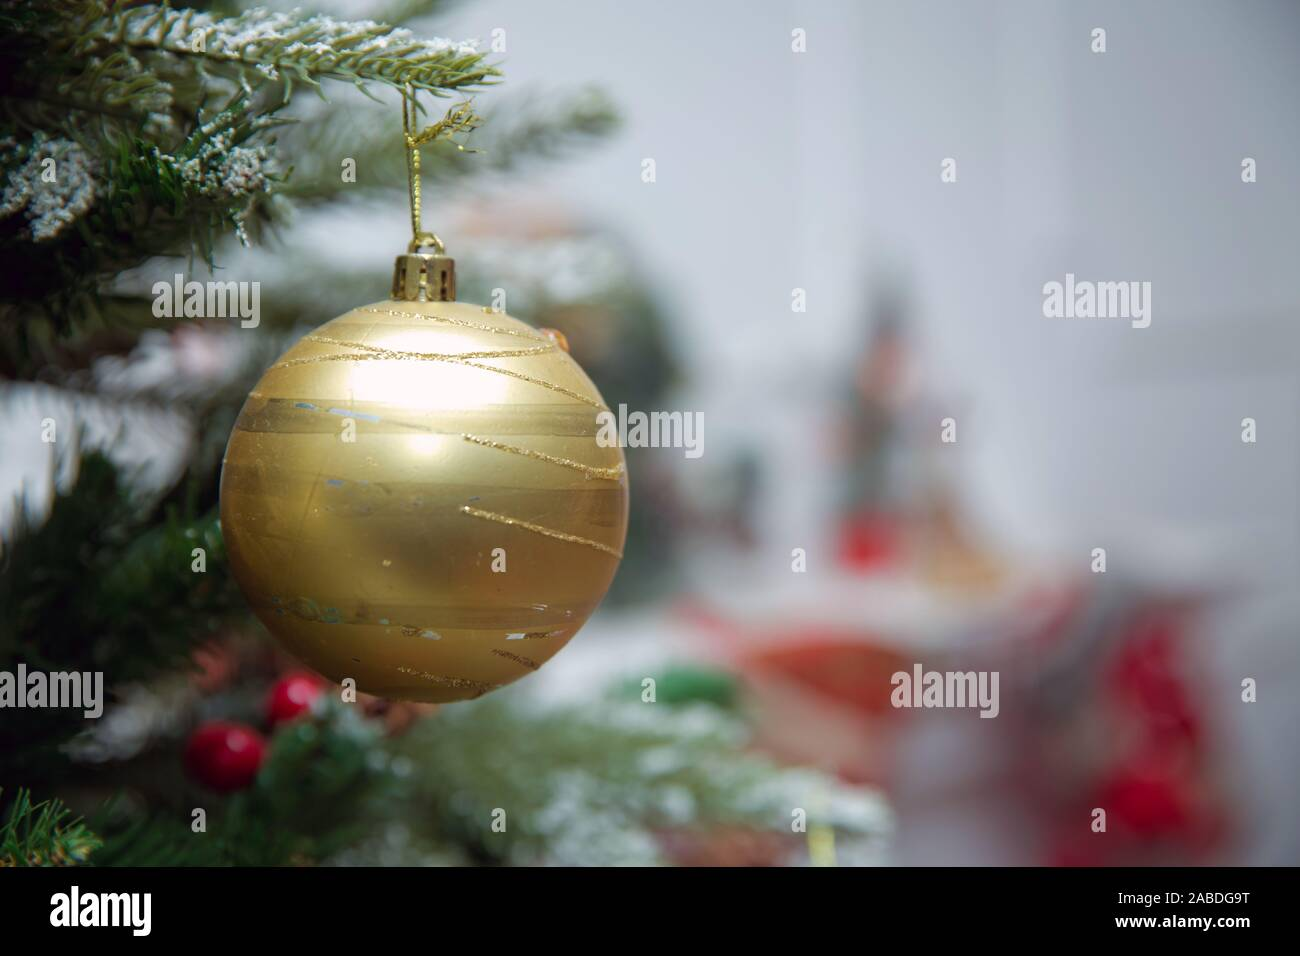 Branches Christmas Gold Ball New Year Background Decorations Christmas White Tree Green Nature Christmas Gold Ball Christmas Ball Hanging Star Stock Photo Alamy